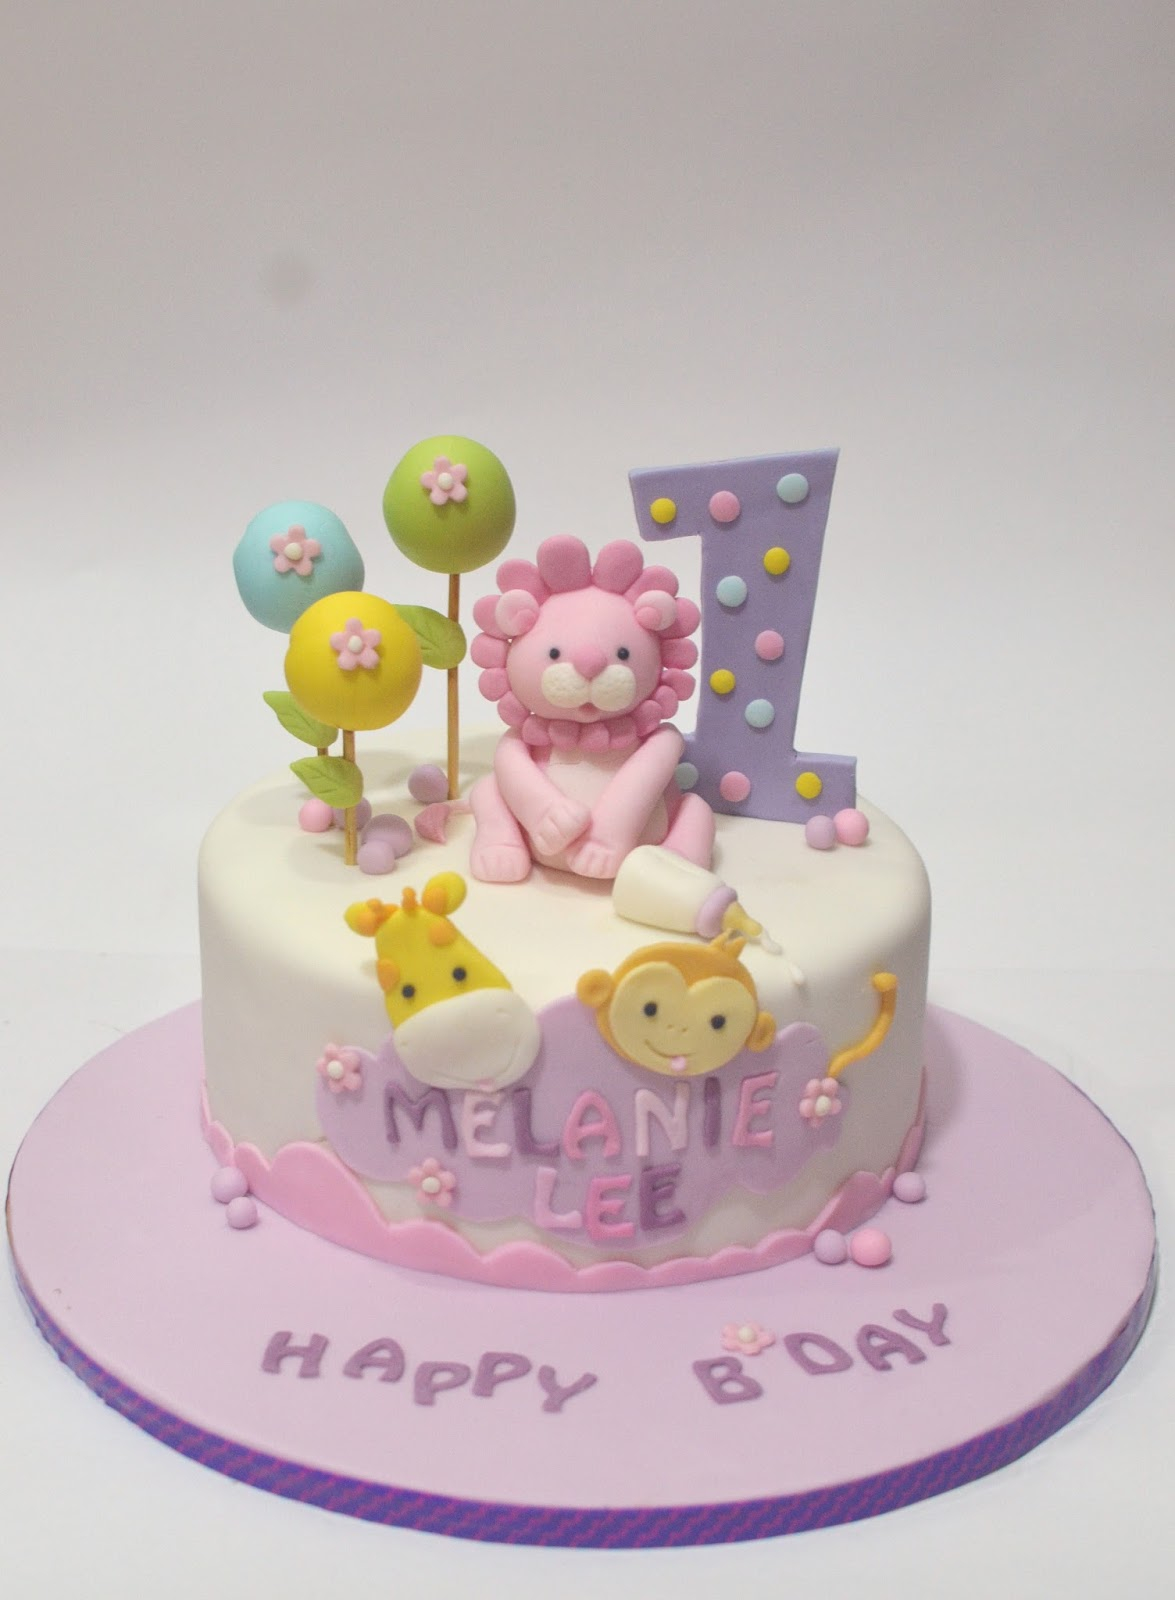 Cute Birthday Cakes Mom And Daughter Safari Animals Cake For One Year Old